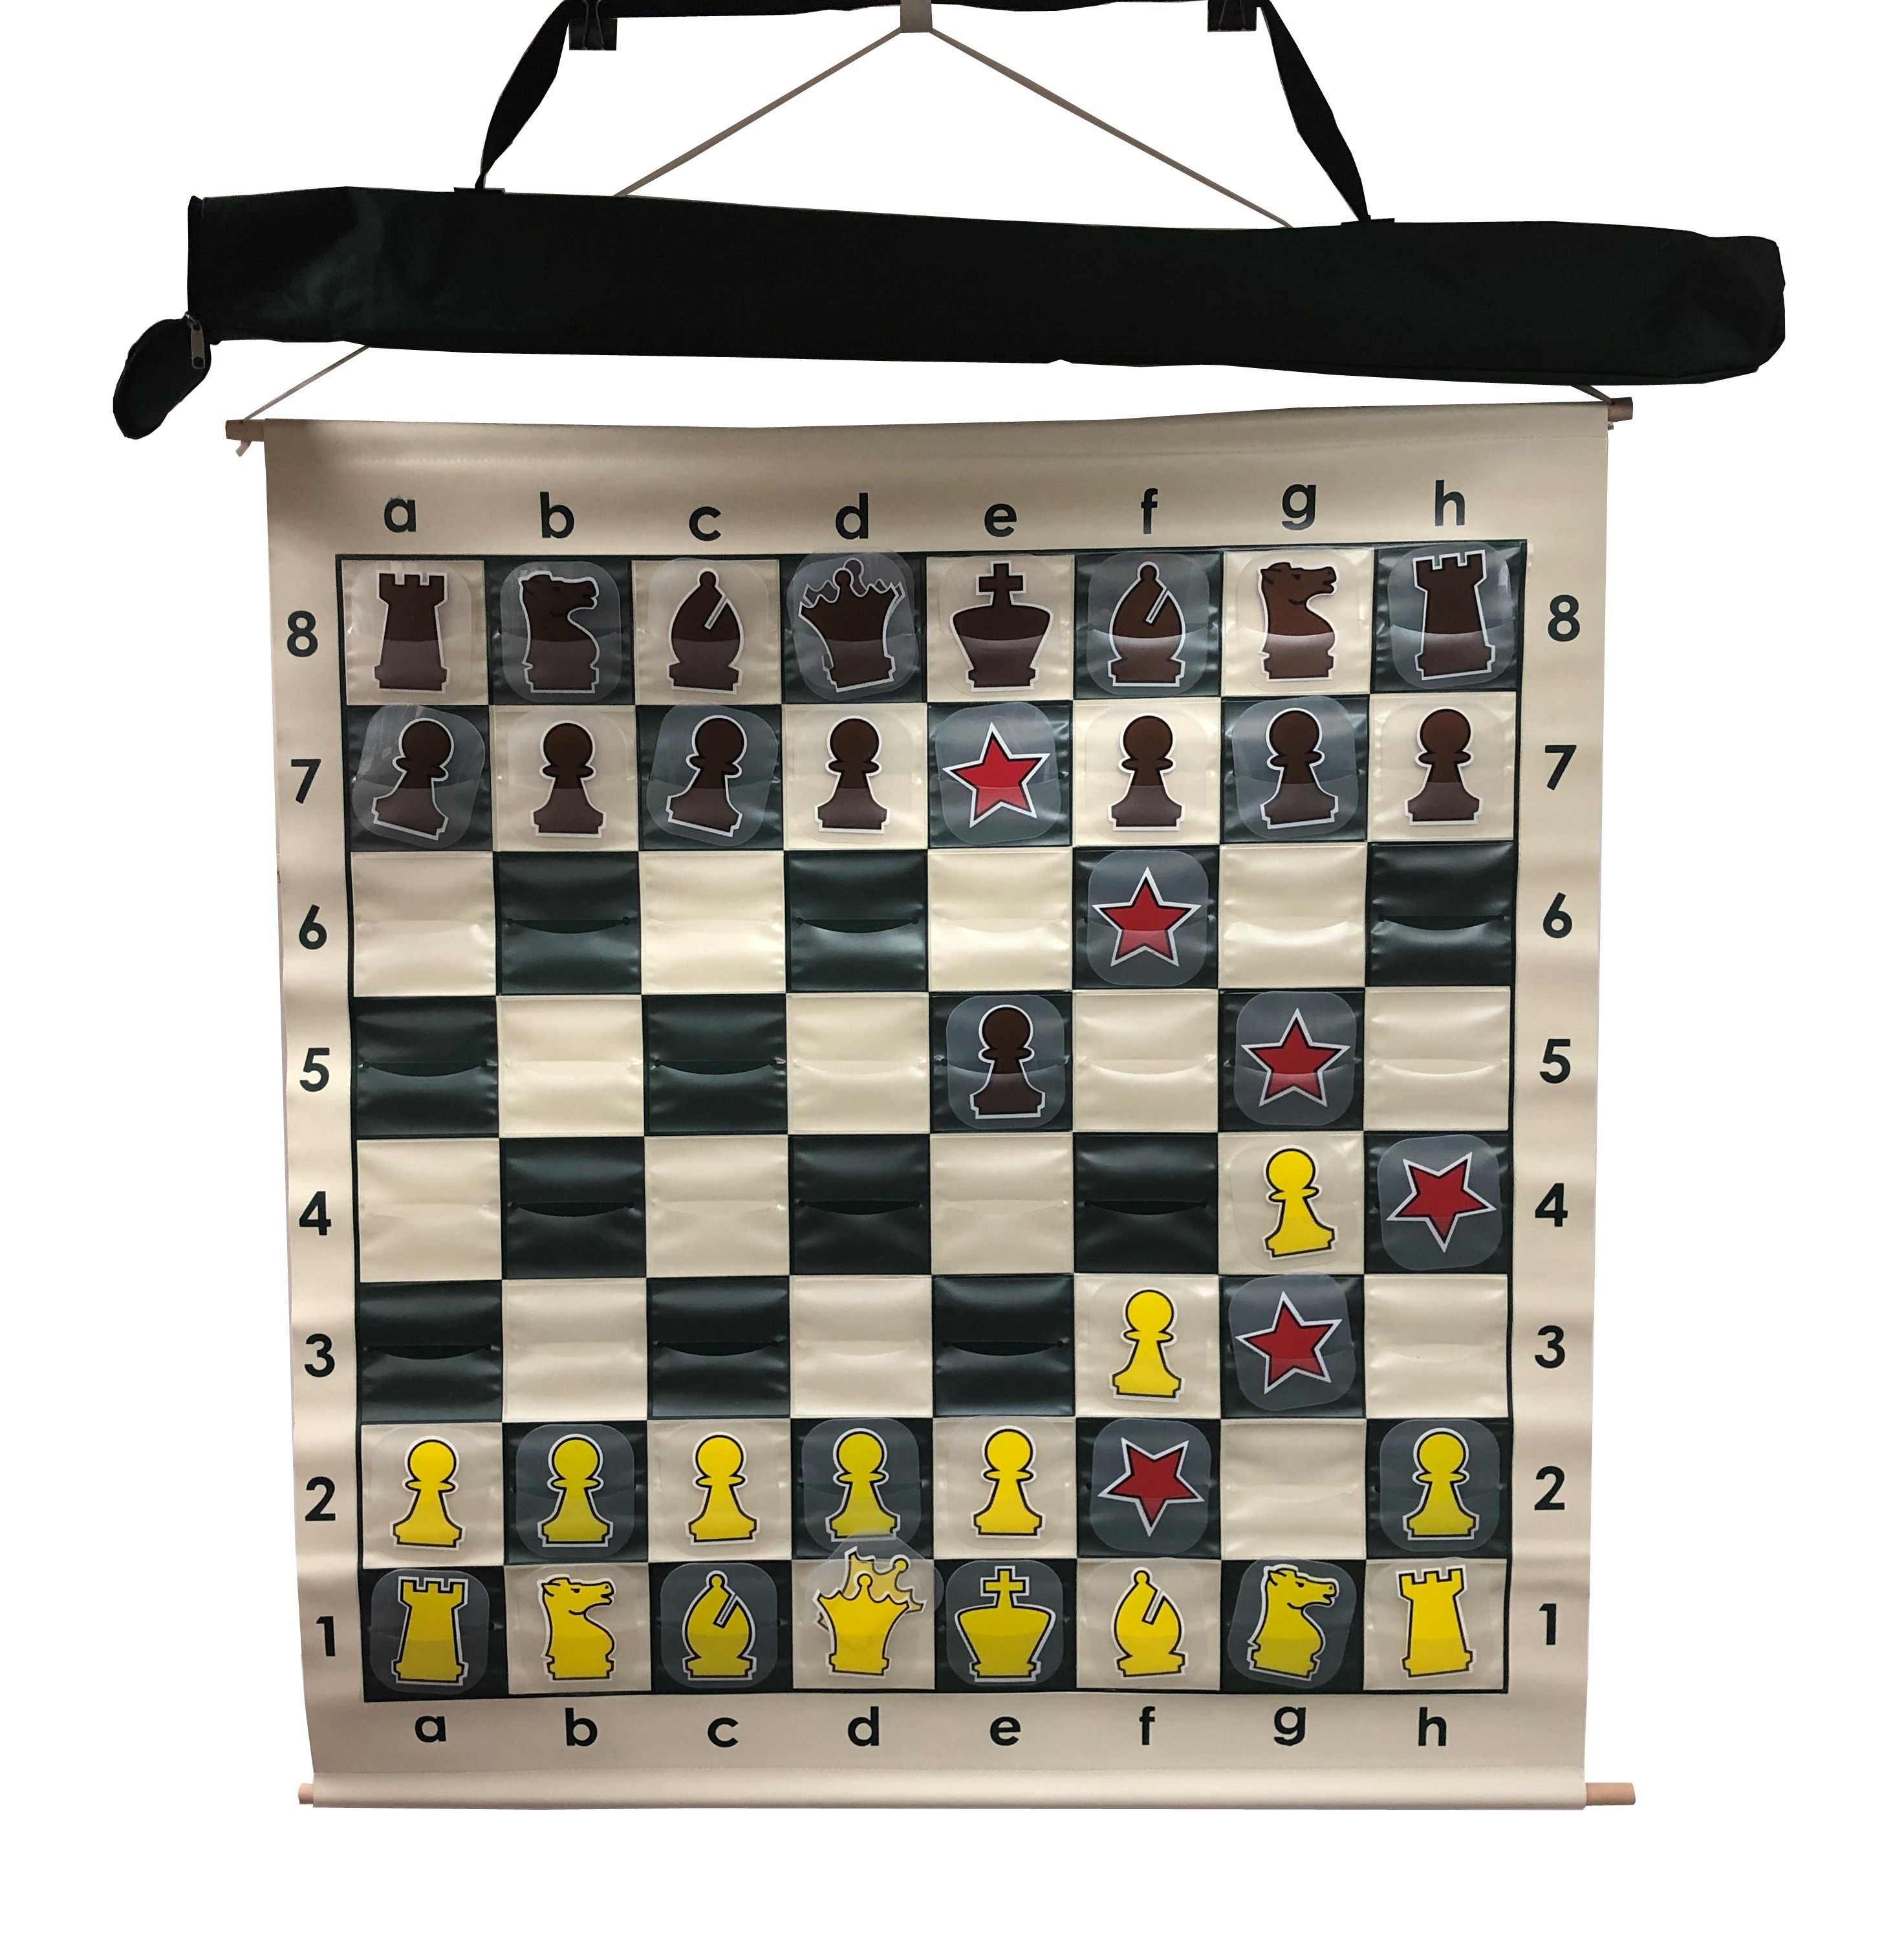 4 in.Square Pro Chess Demo Board